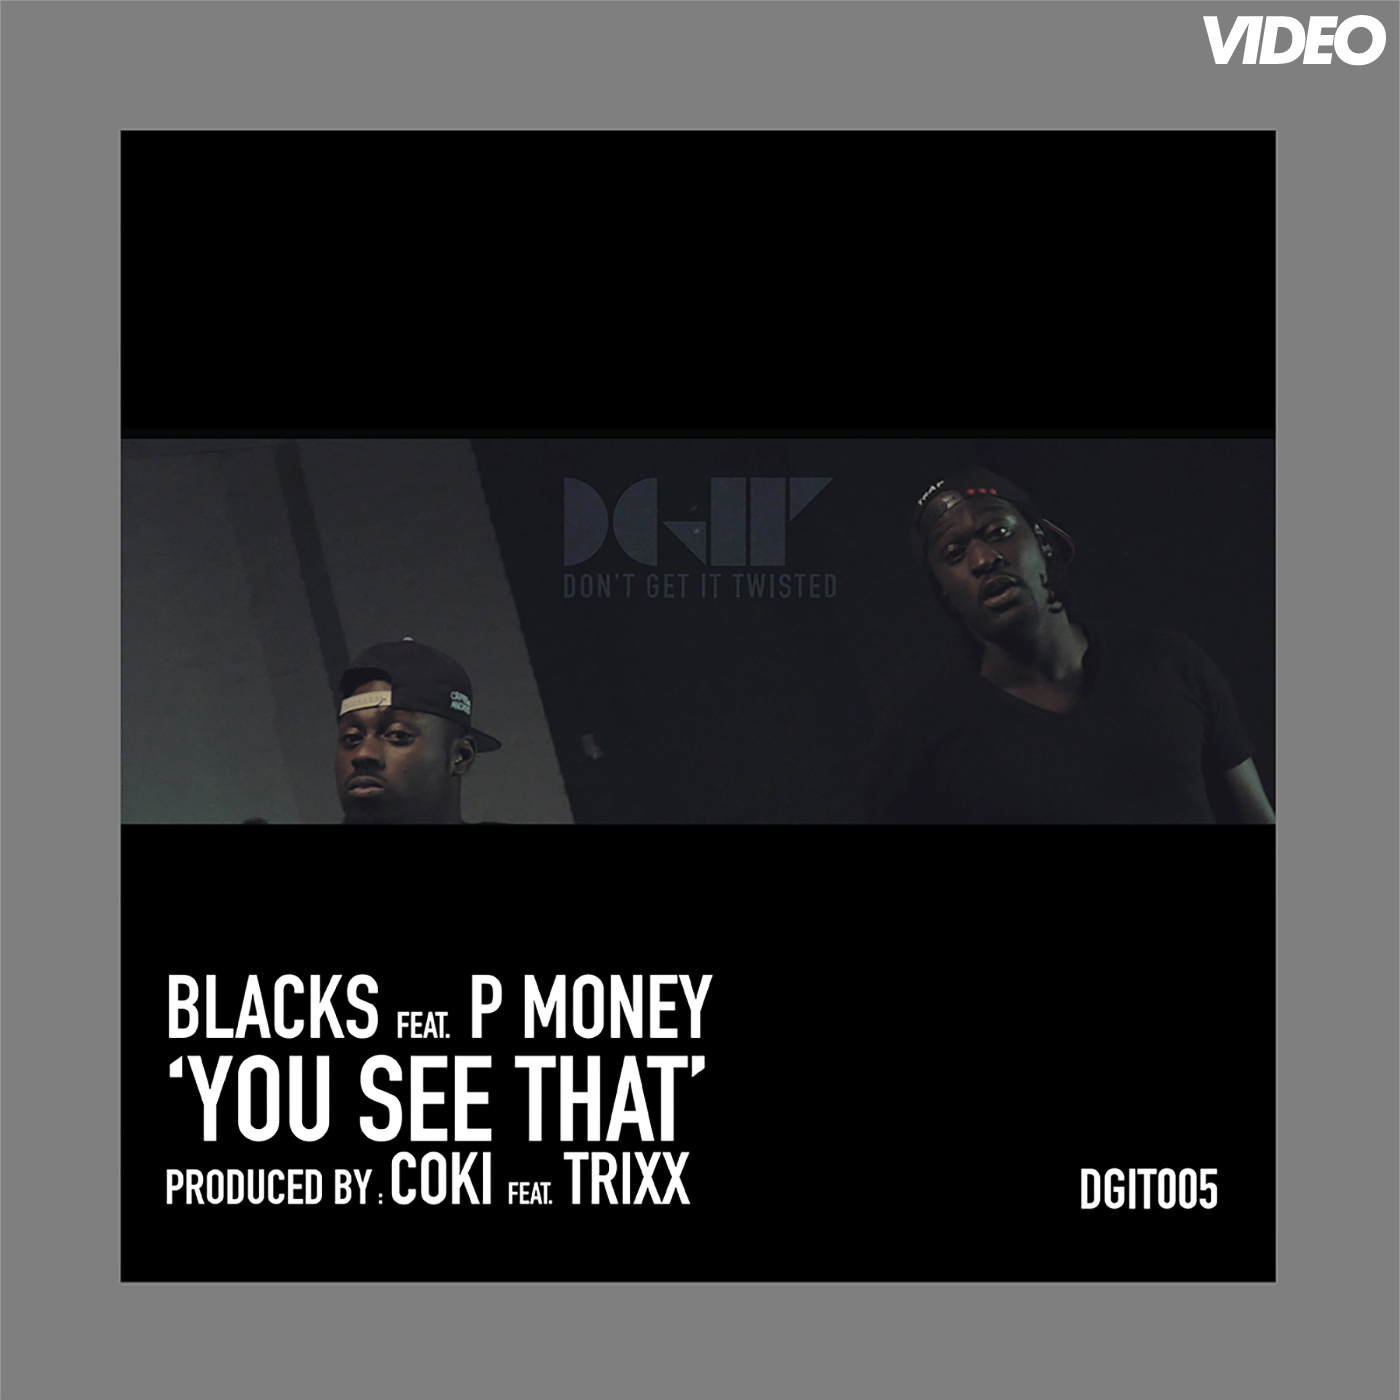 DGIT005 BLACKS_P_MONEY_YOU_SEE_THAT get darker art - VIDEO